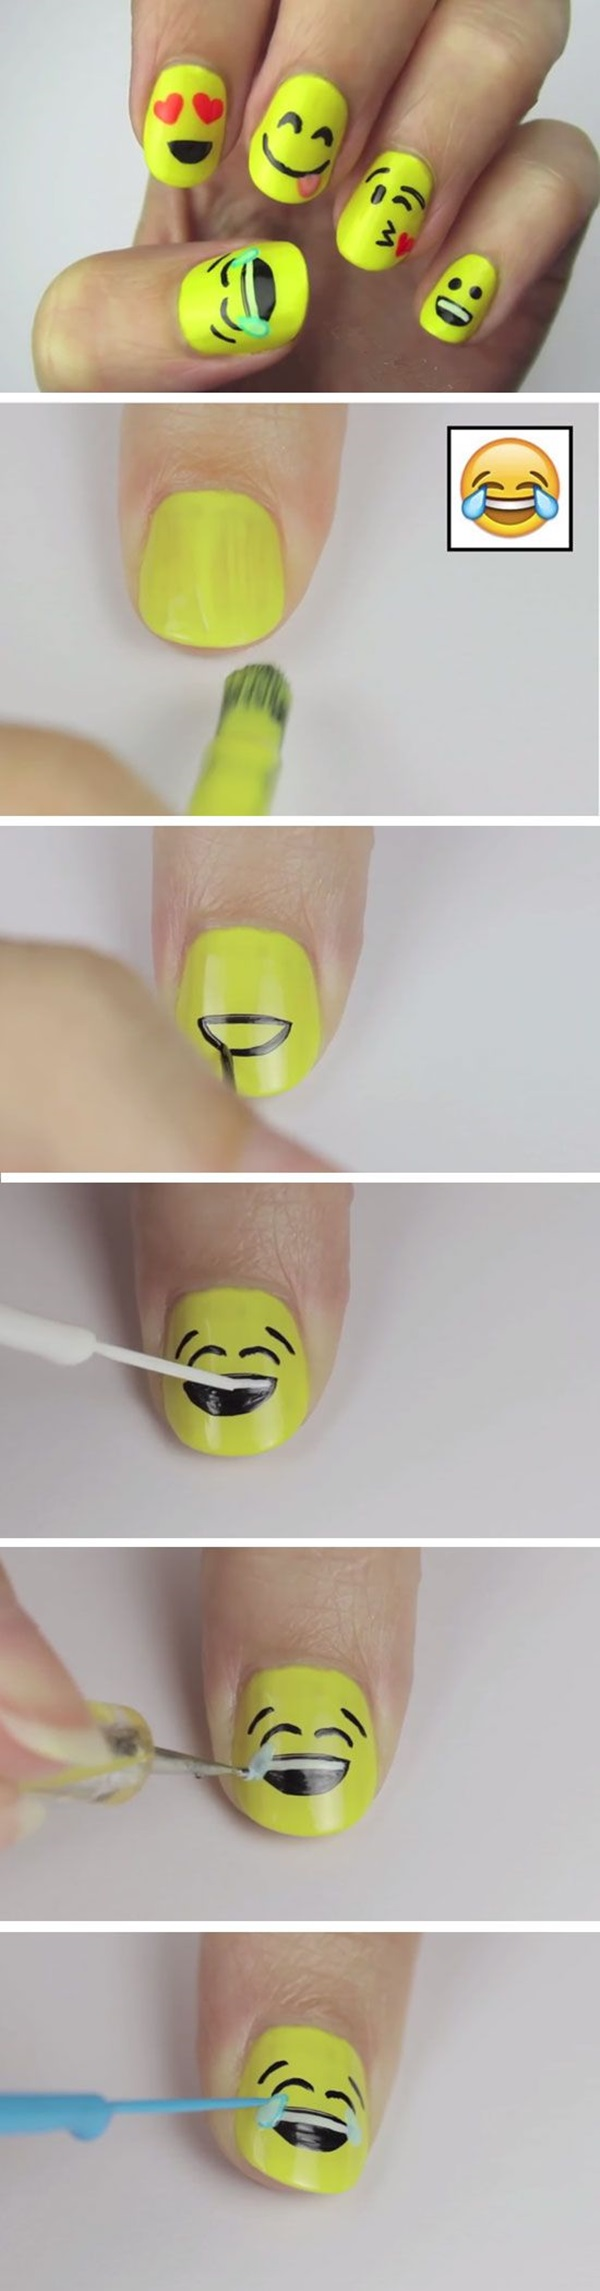 DIY Nail art designs (47)